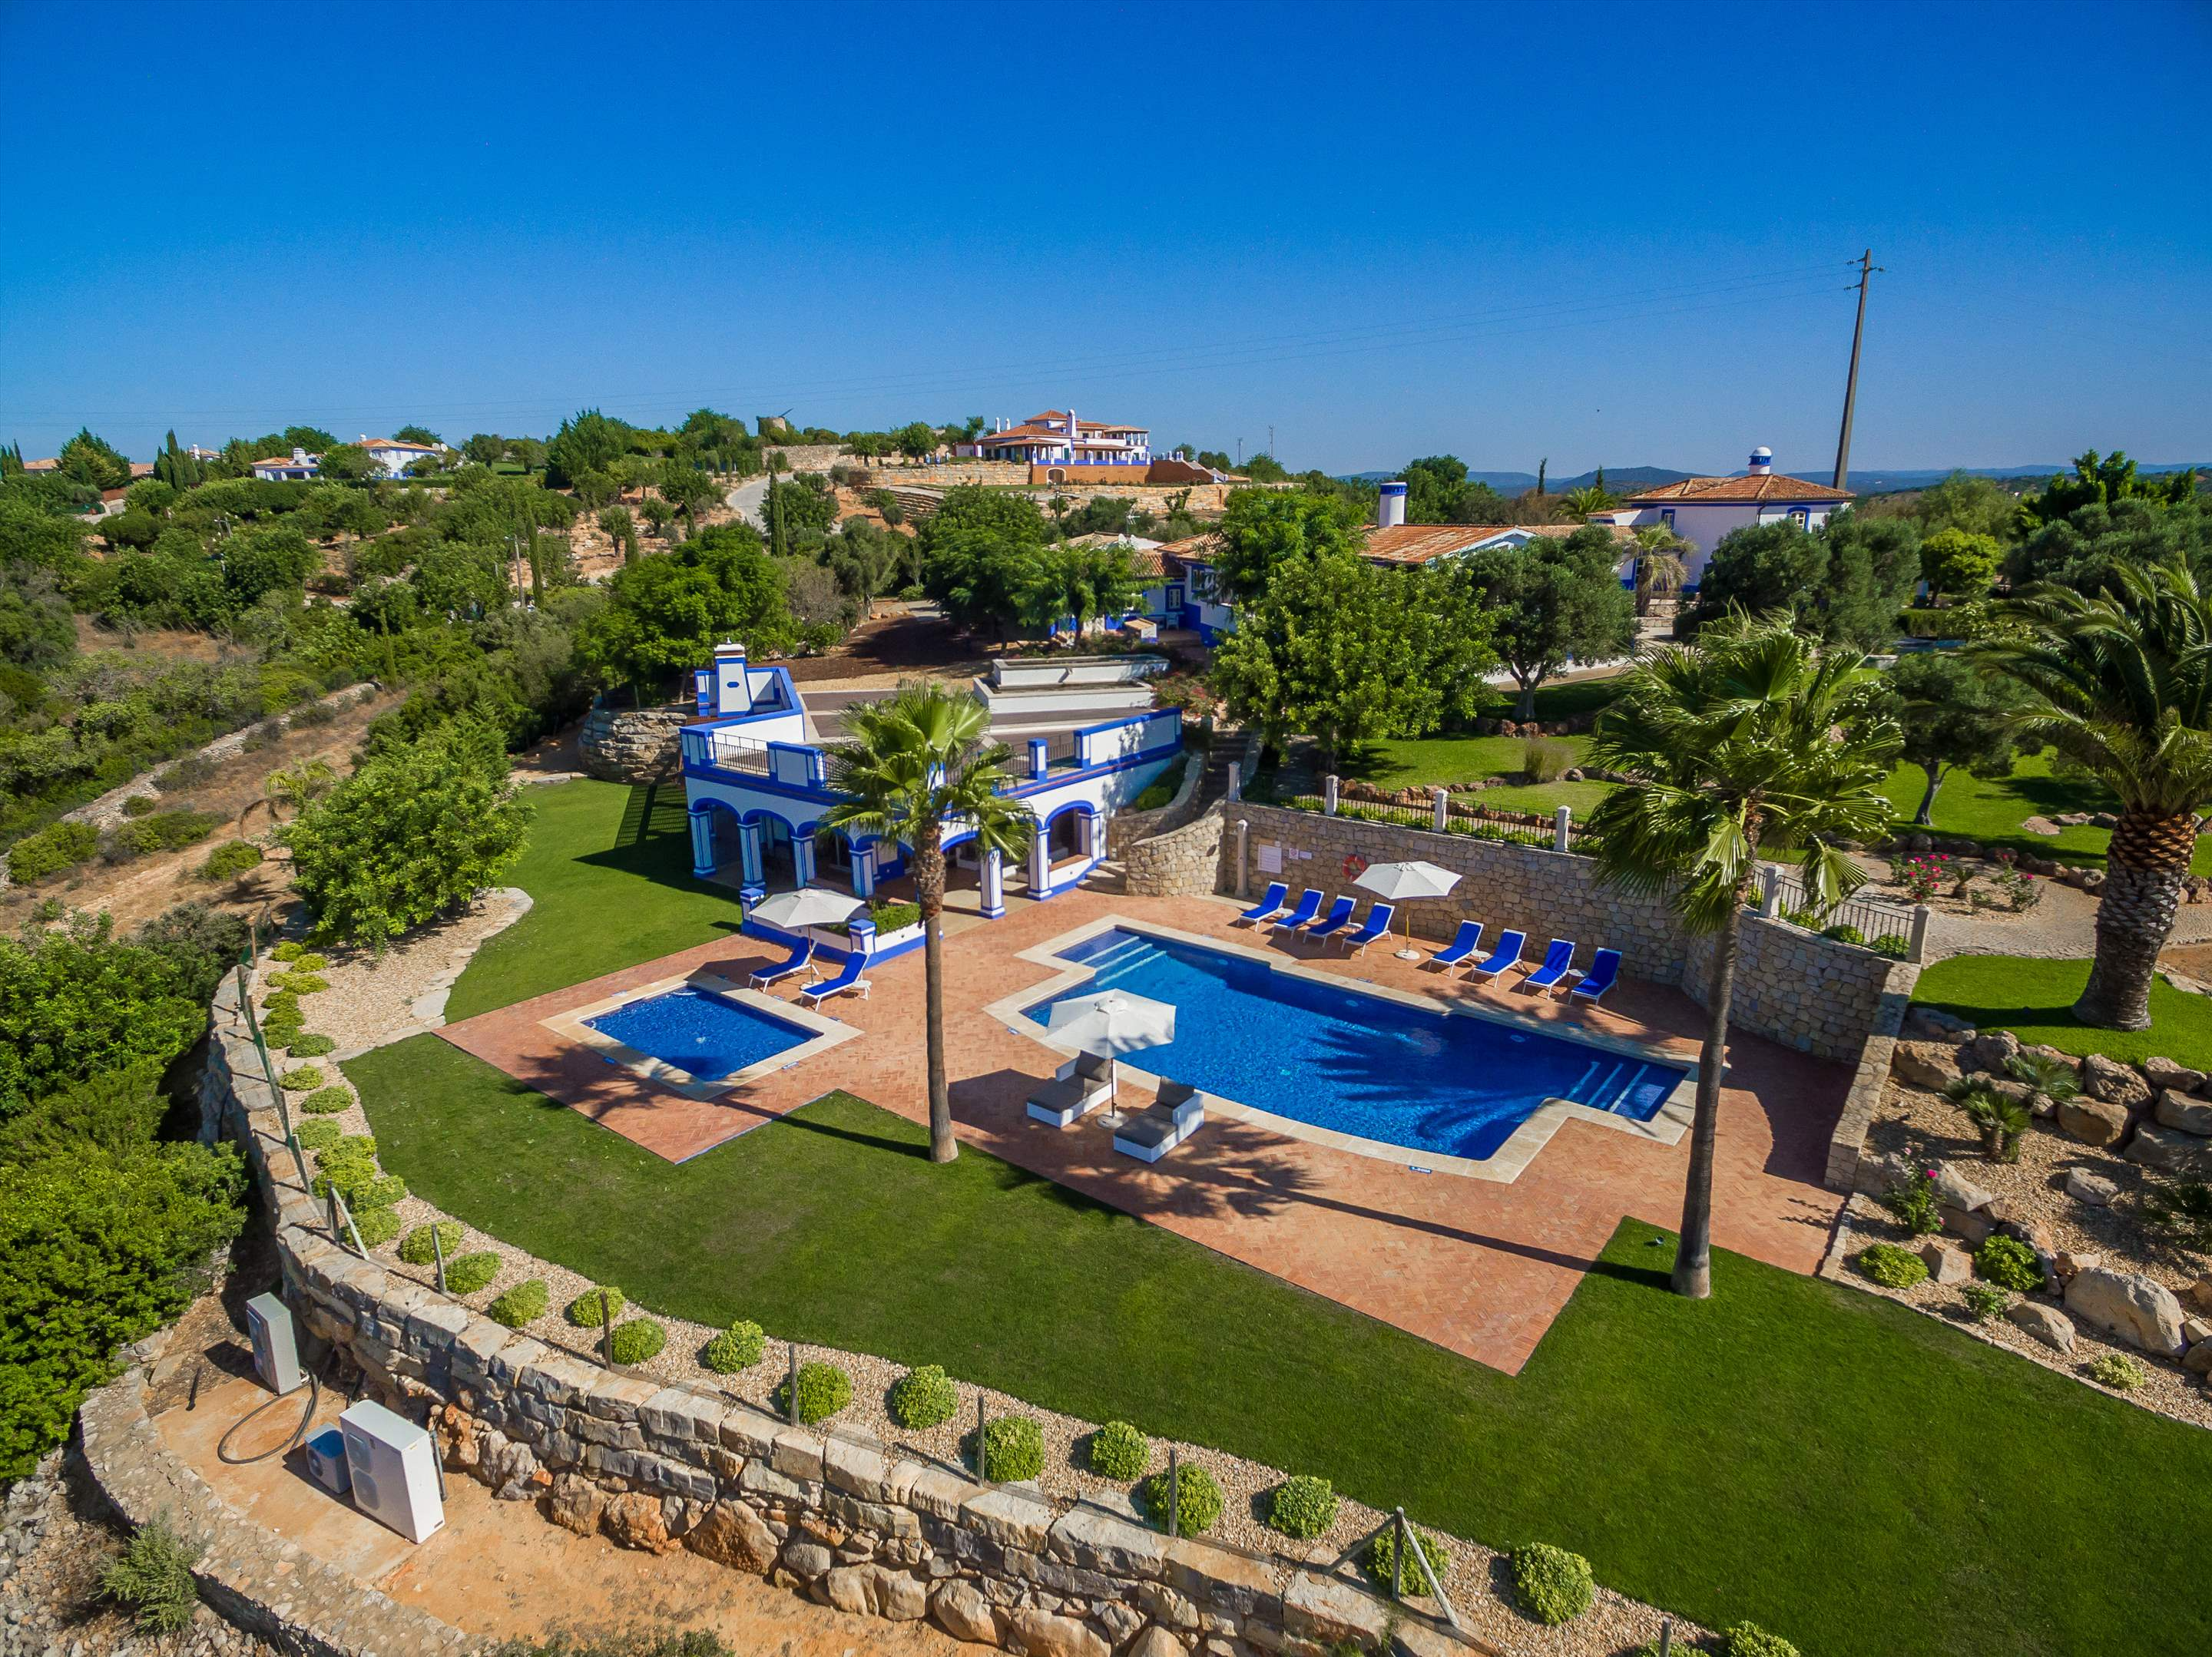 Casa Alemao, Main House, 5 Bedrooms, 5 bedroom villa in Vilamoura Area, Algarve Photo #29